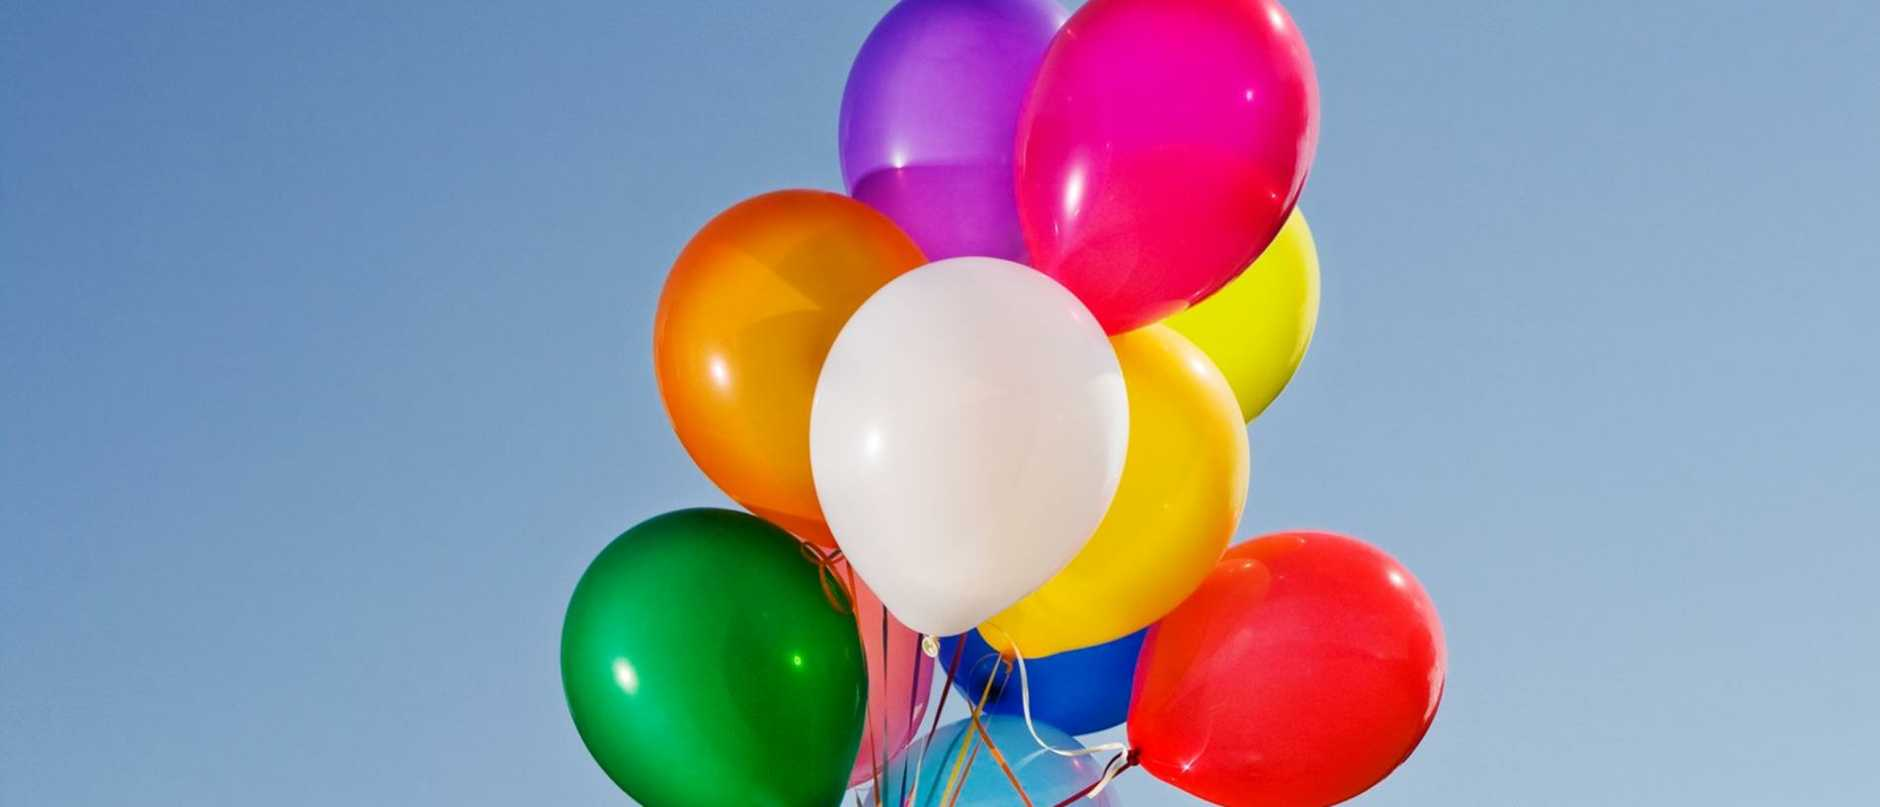 Little blond girl with multicolored balloons